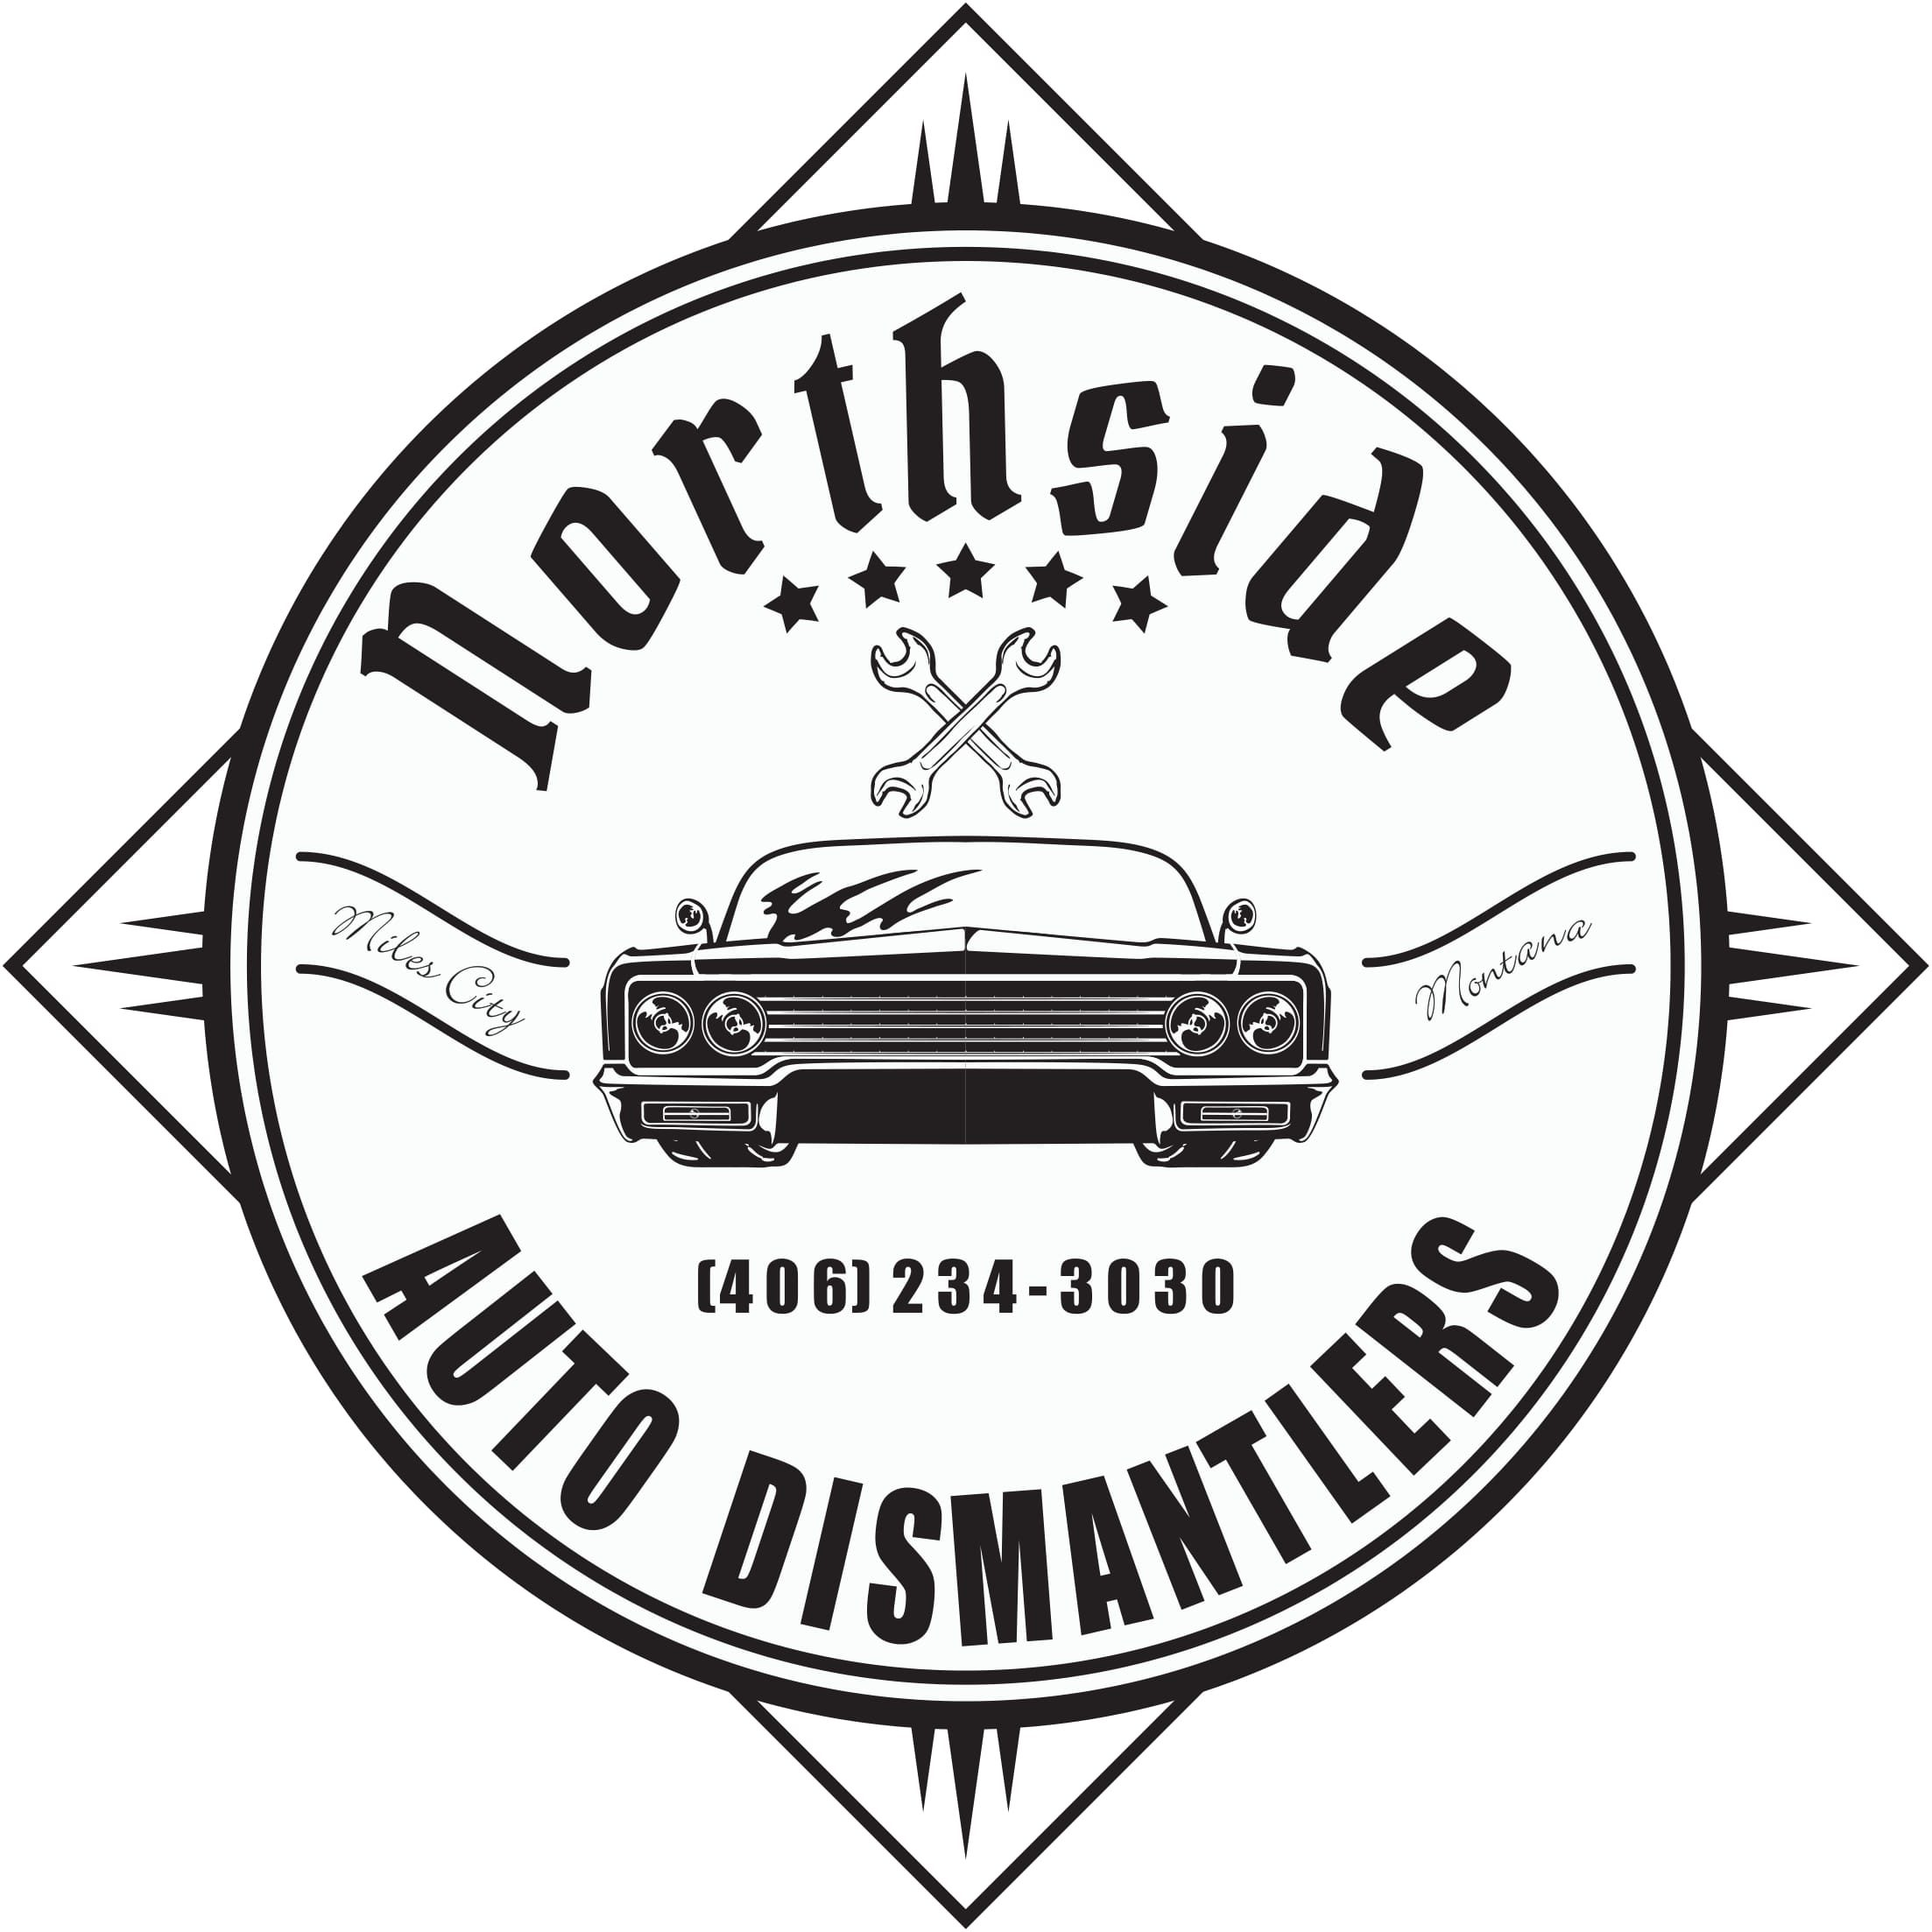 Northside Auto Dismantlers